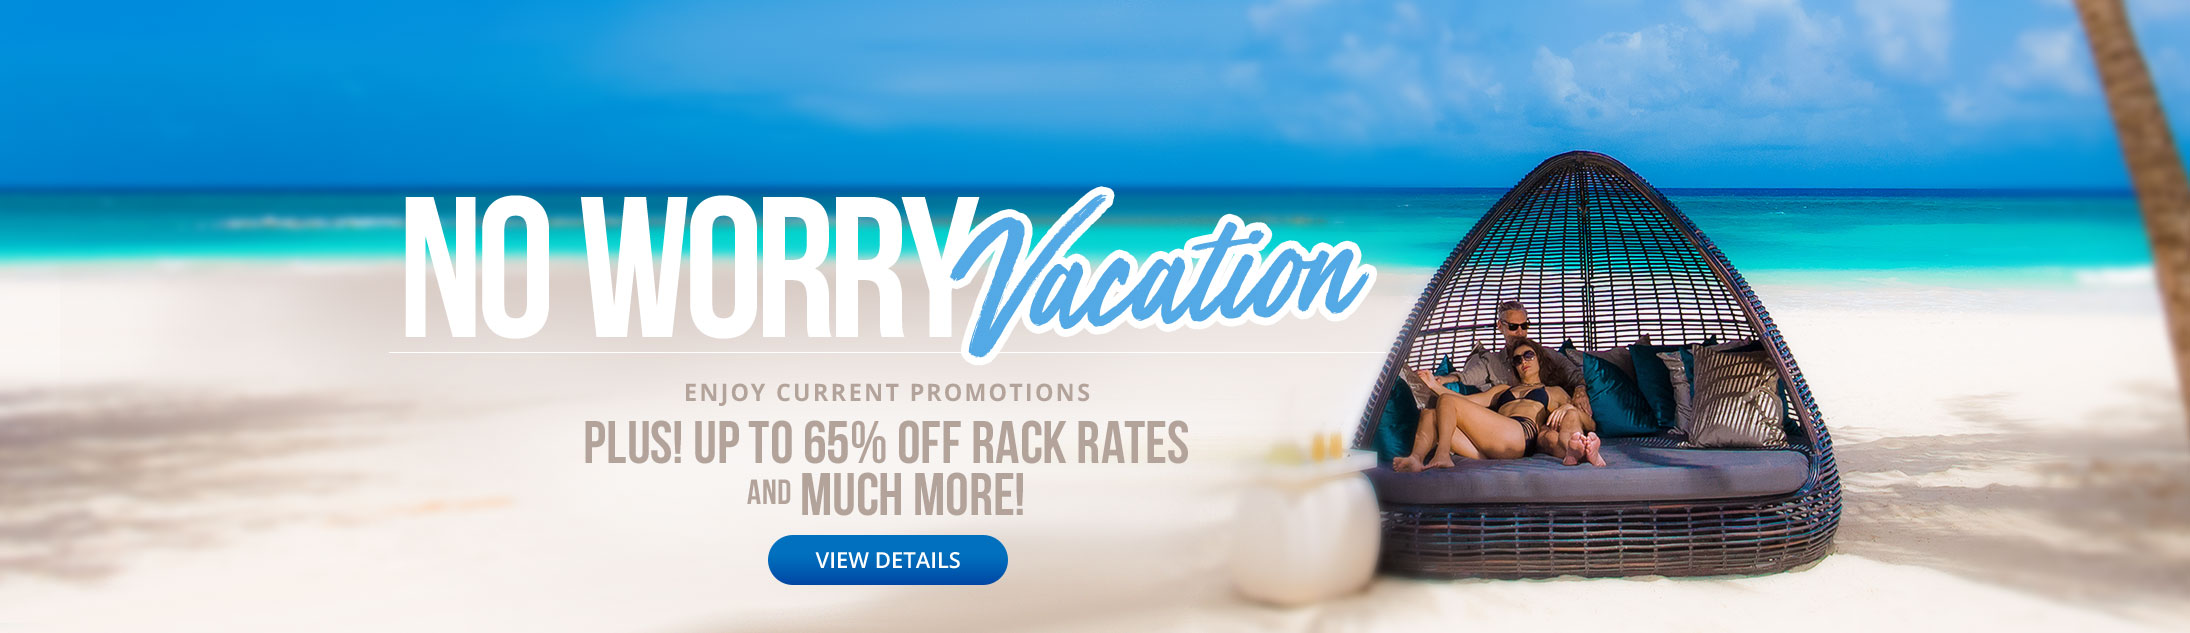 No Worry Vacation - Book any qualifying Sandals vacation of 6-nights or longer and receive a special package offer for up to two (2) persons.